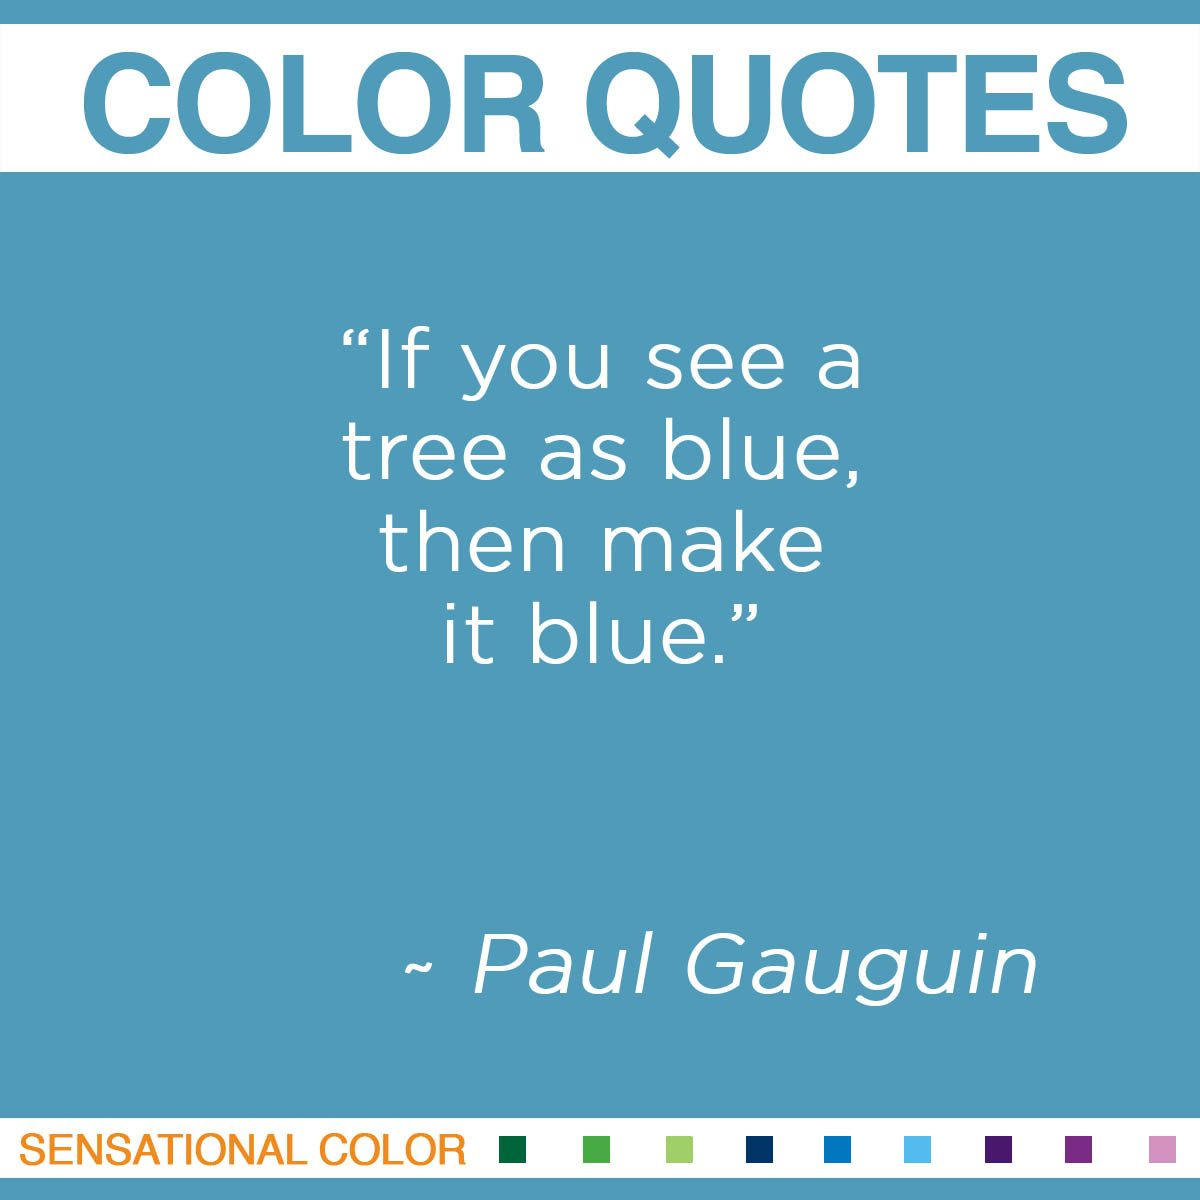 """If you see a tree as blue, then make it blue."" - Paul Gauguin"